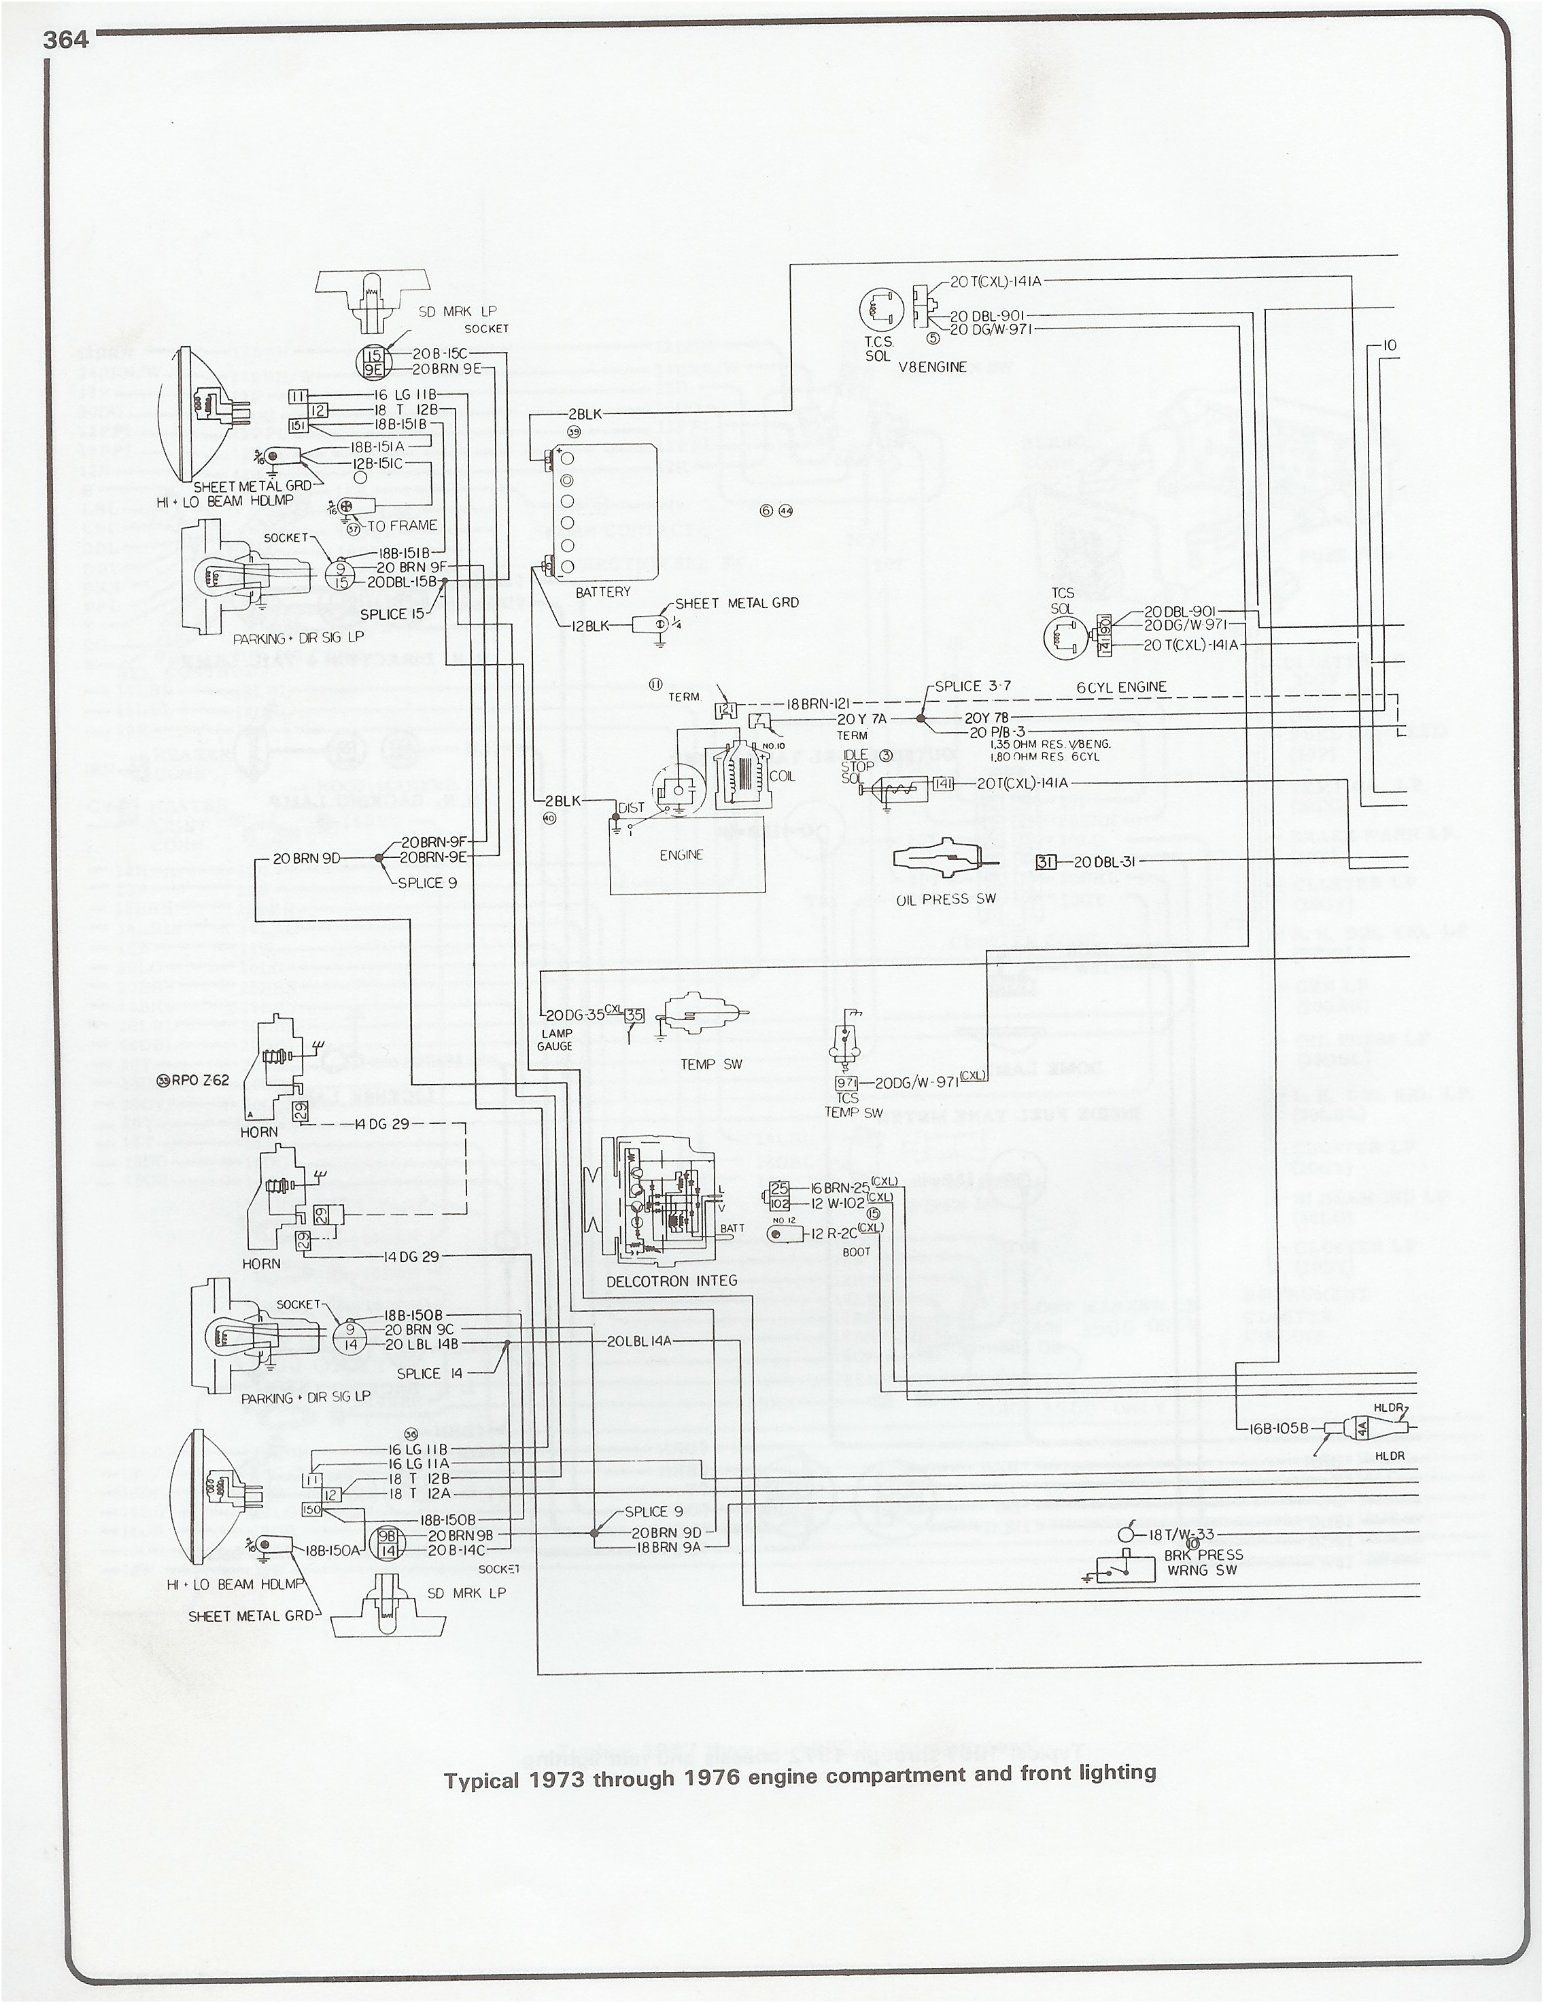 Wiring Diagram 1973 1976 Chevy Pickup. Wiring Diagram 1973 1976 Chevy Pickup. Wiring. 76 Camaro Wiring Diagram At Scoala.co